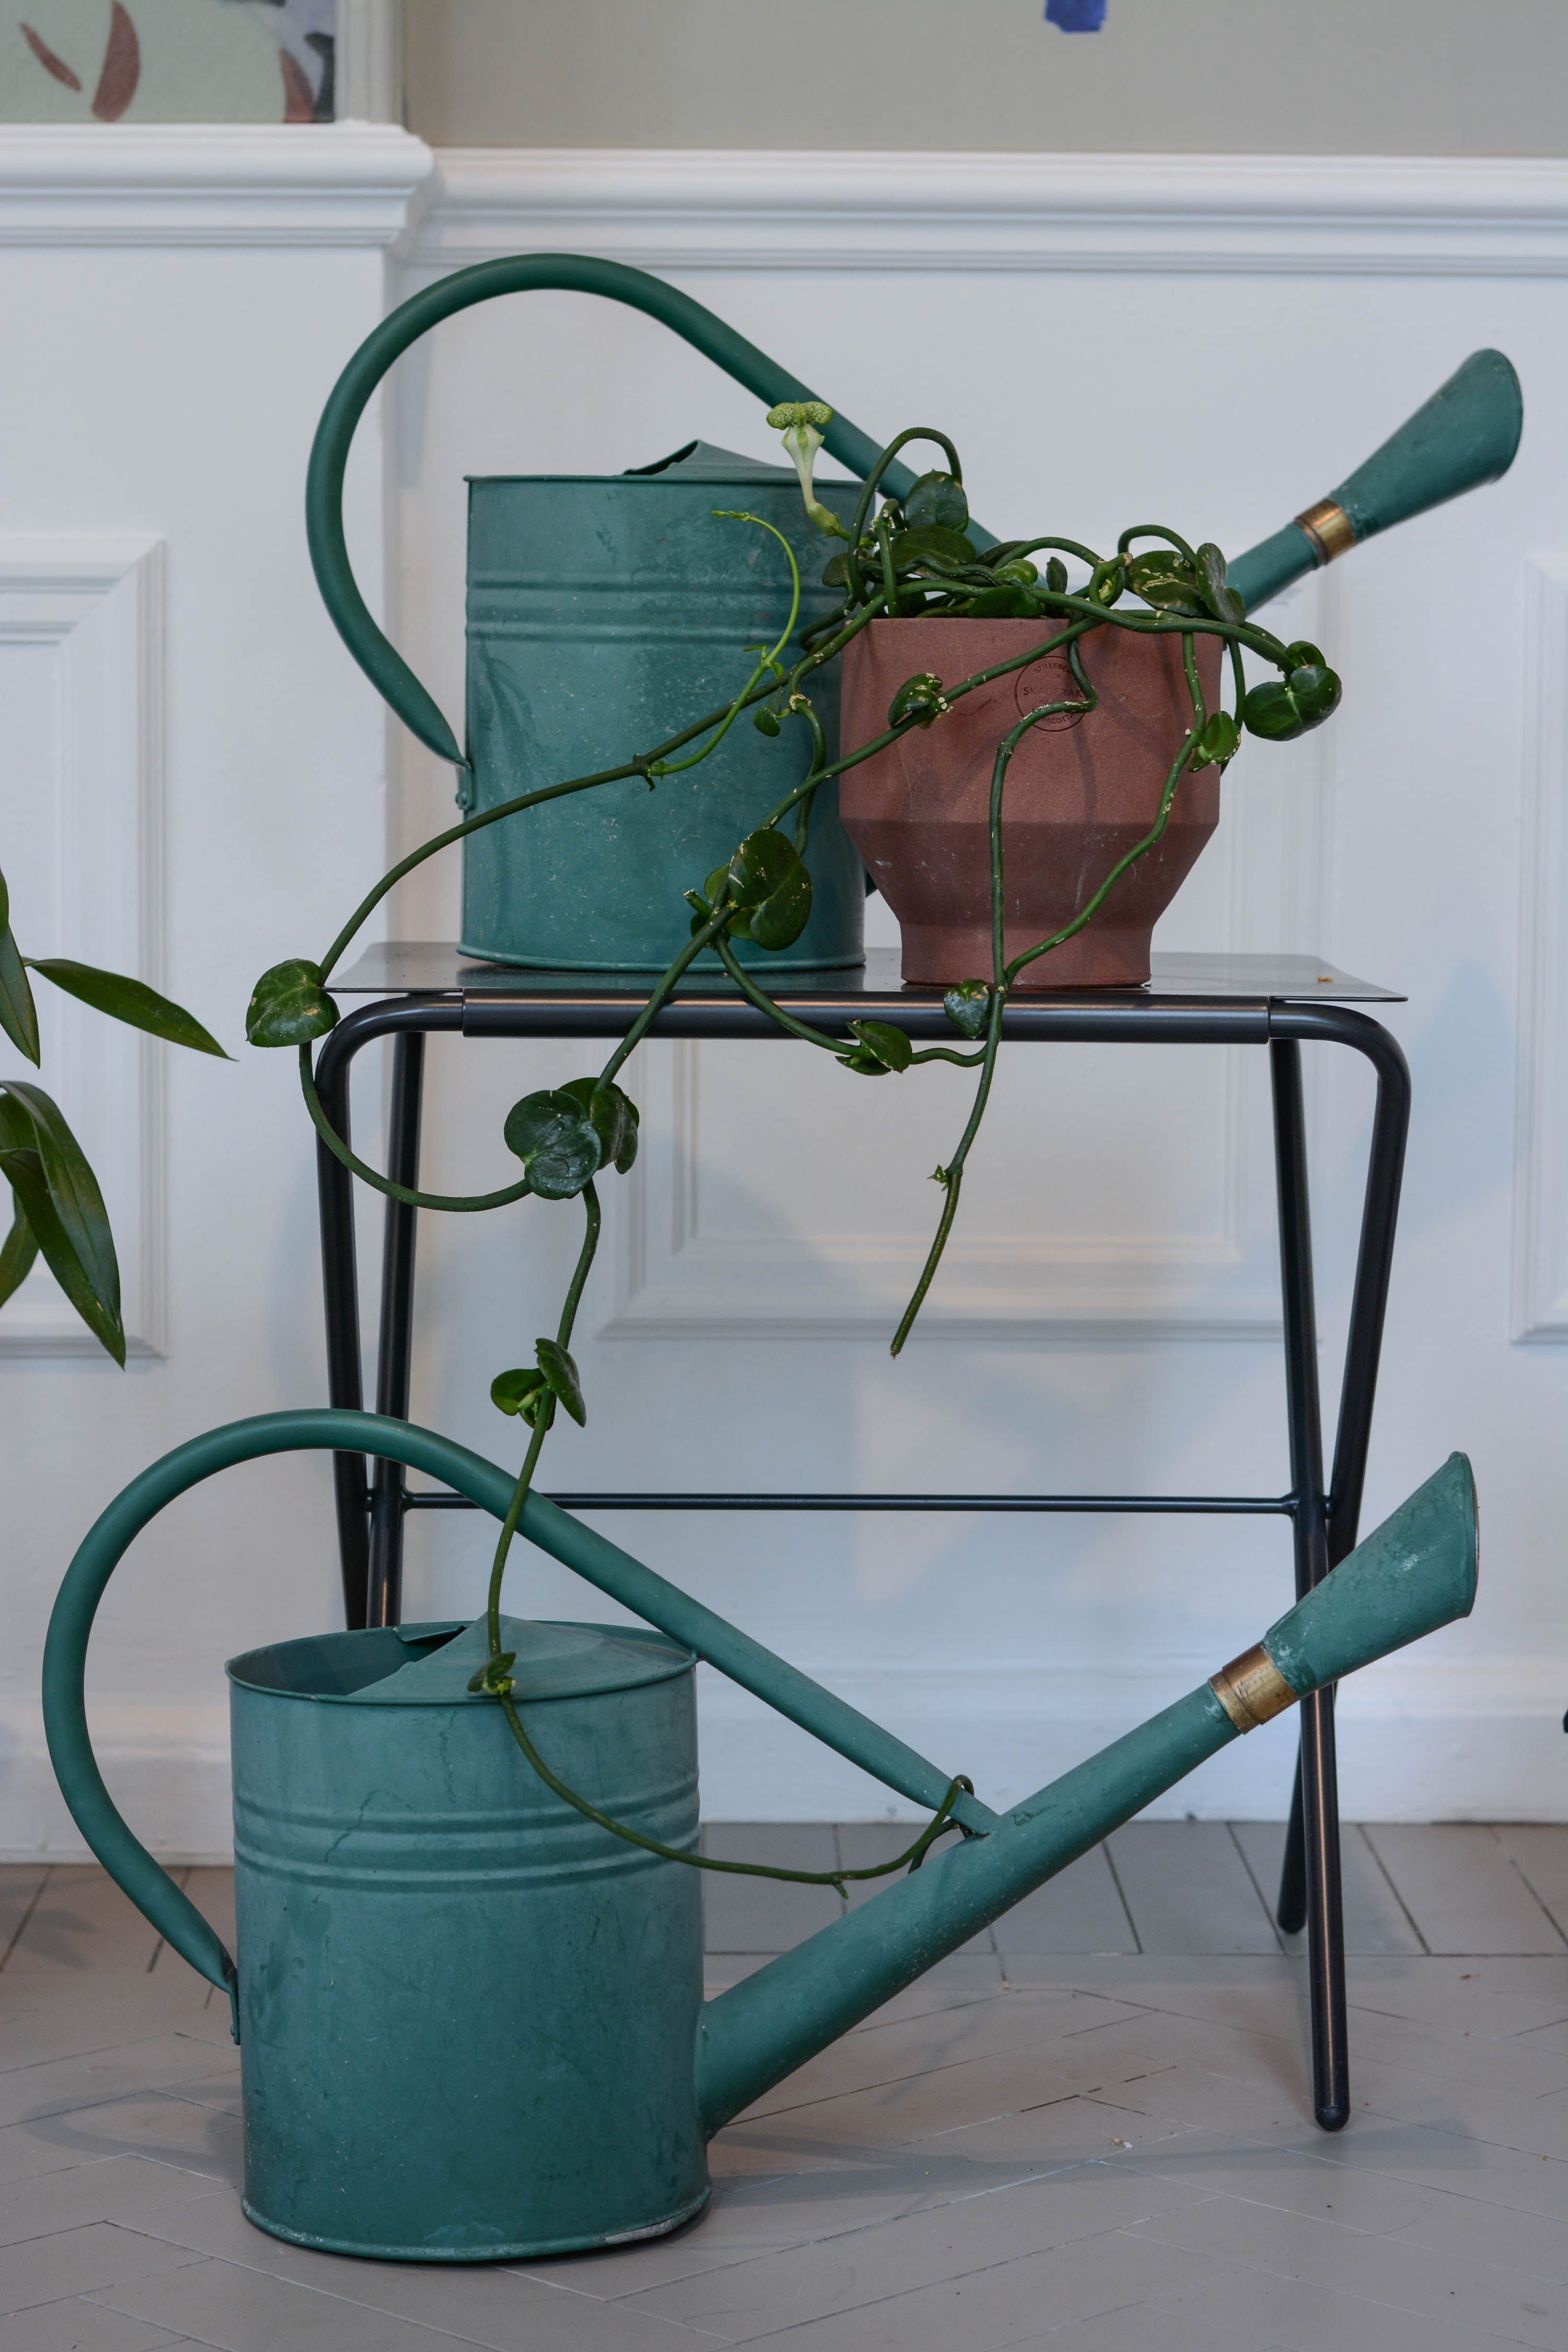 Bow table and Edge pot. Photo by Marianne Jacobsen